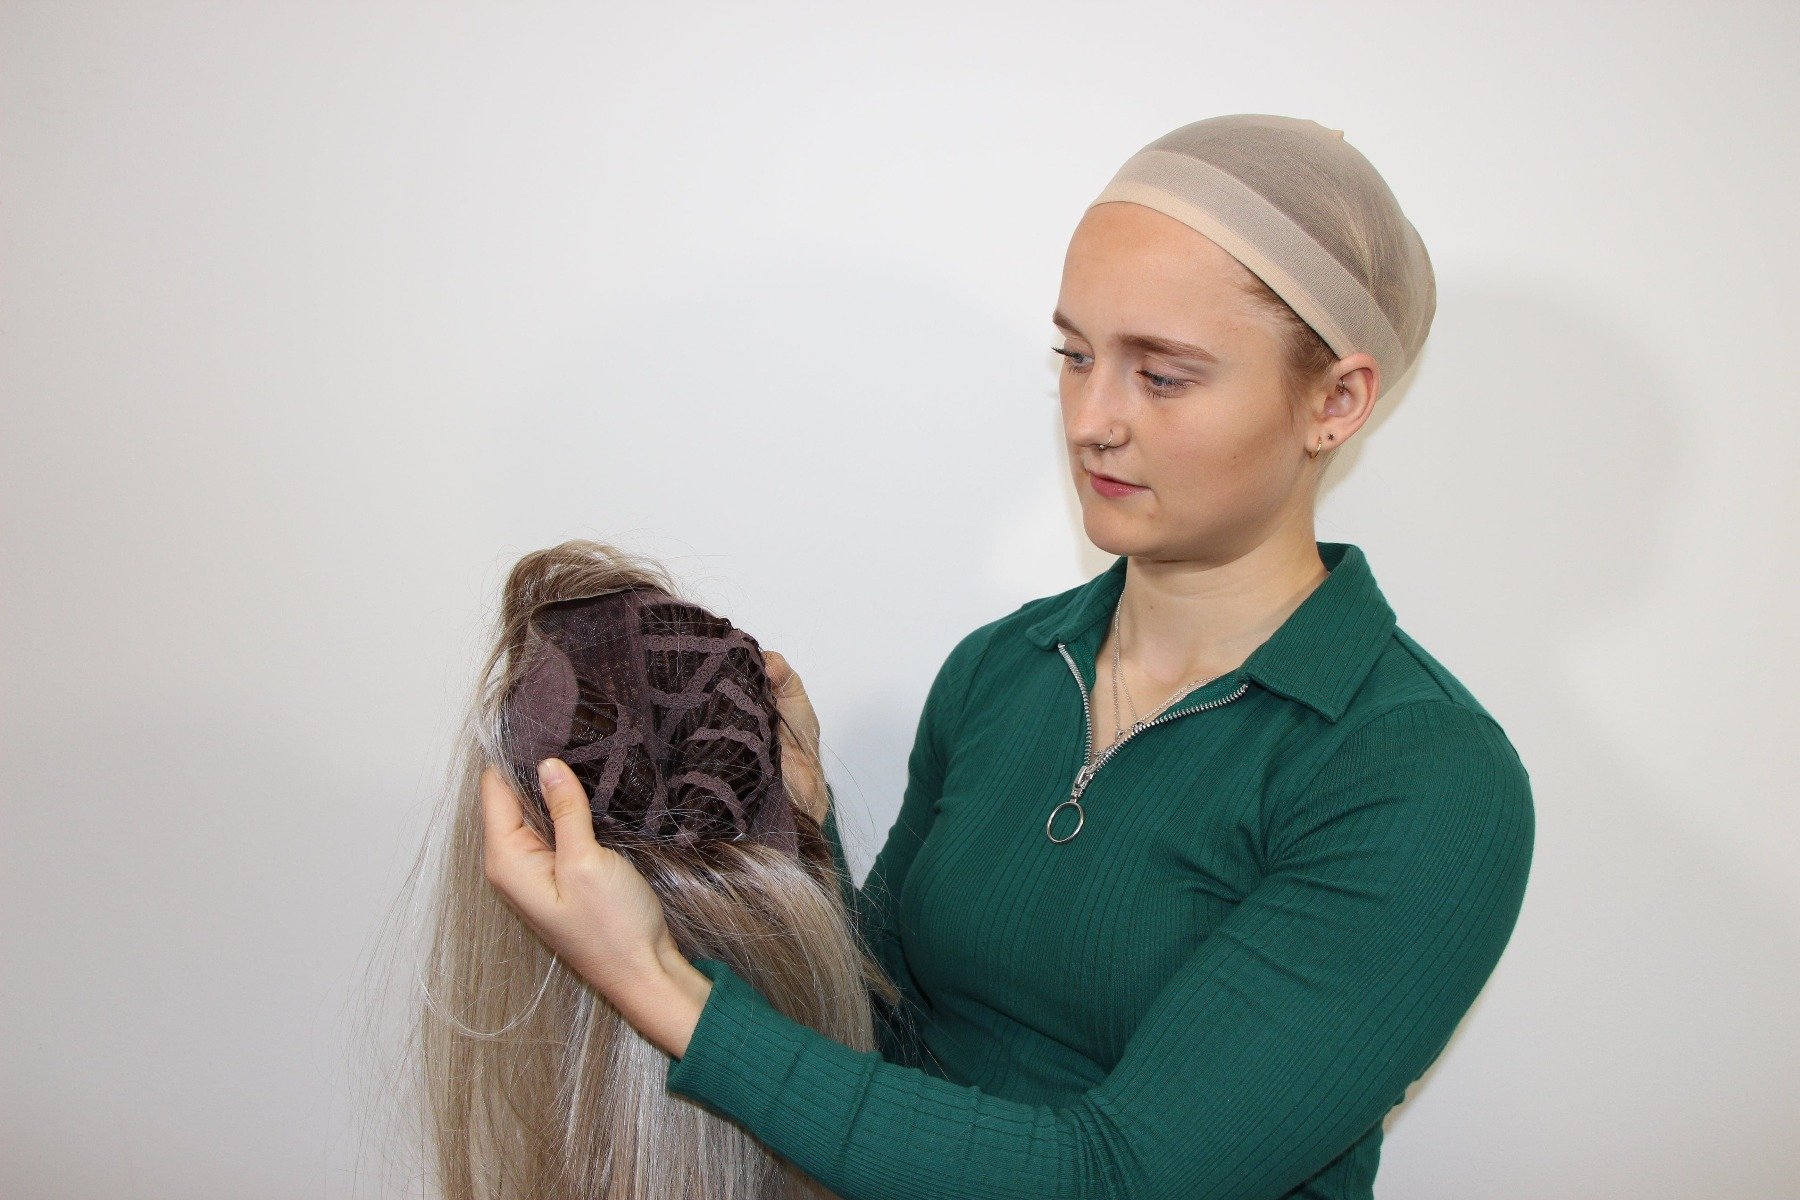 Lady finding the ear points on her wig